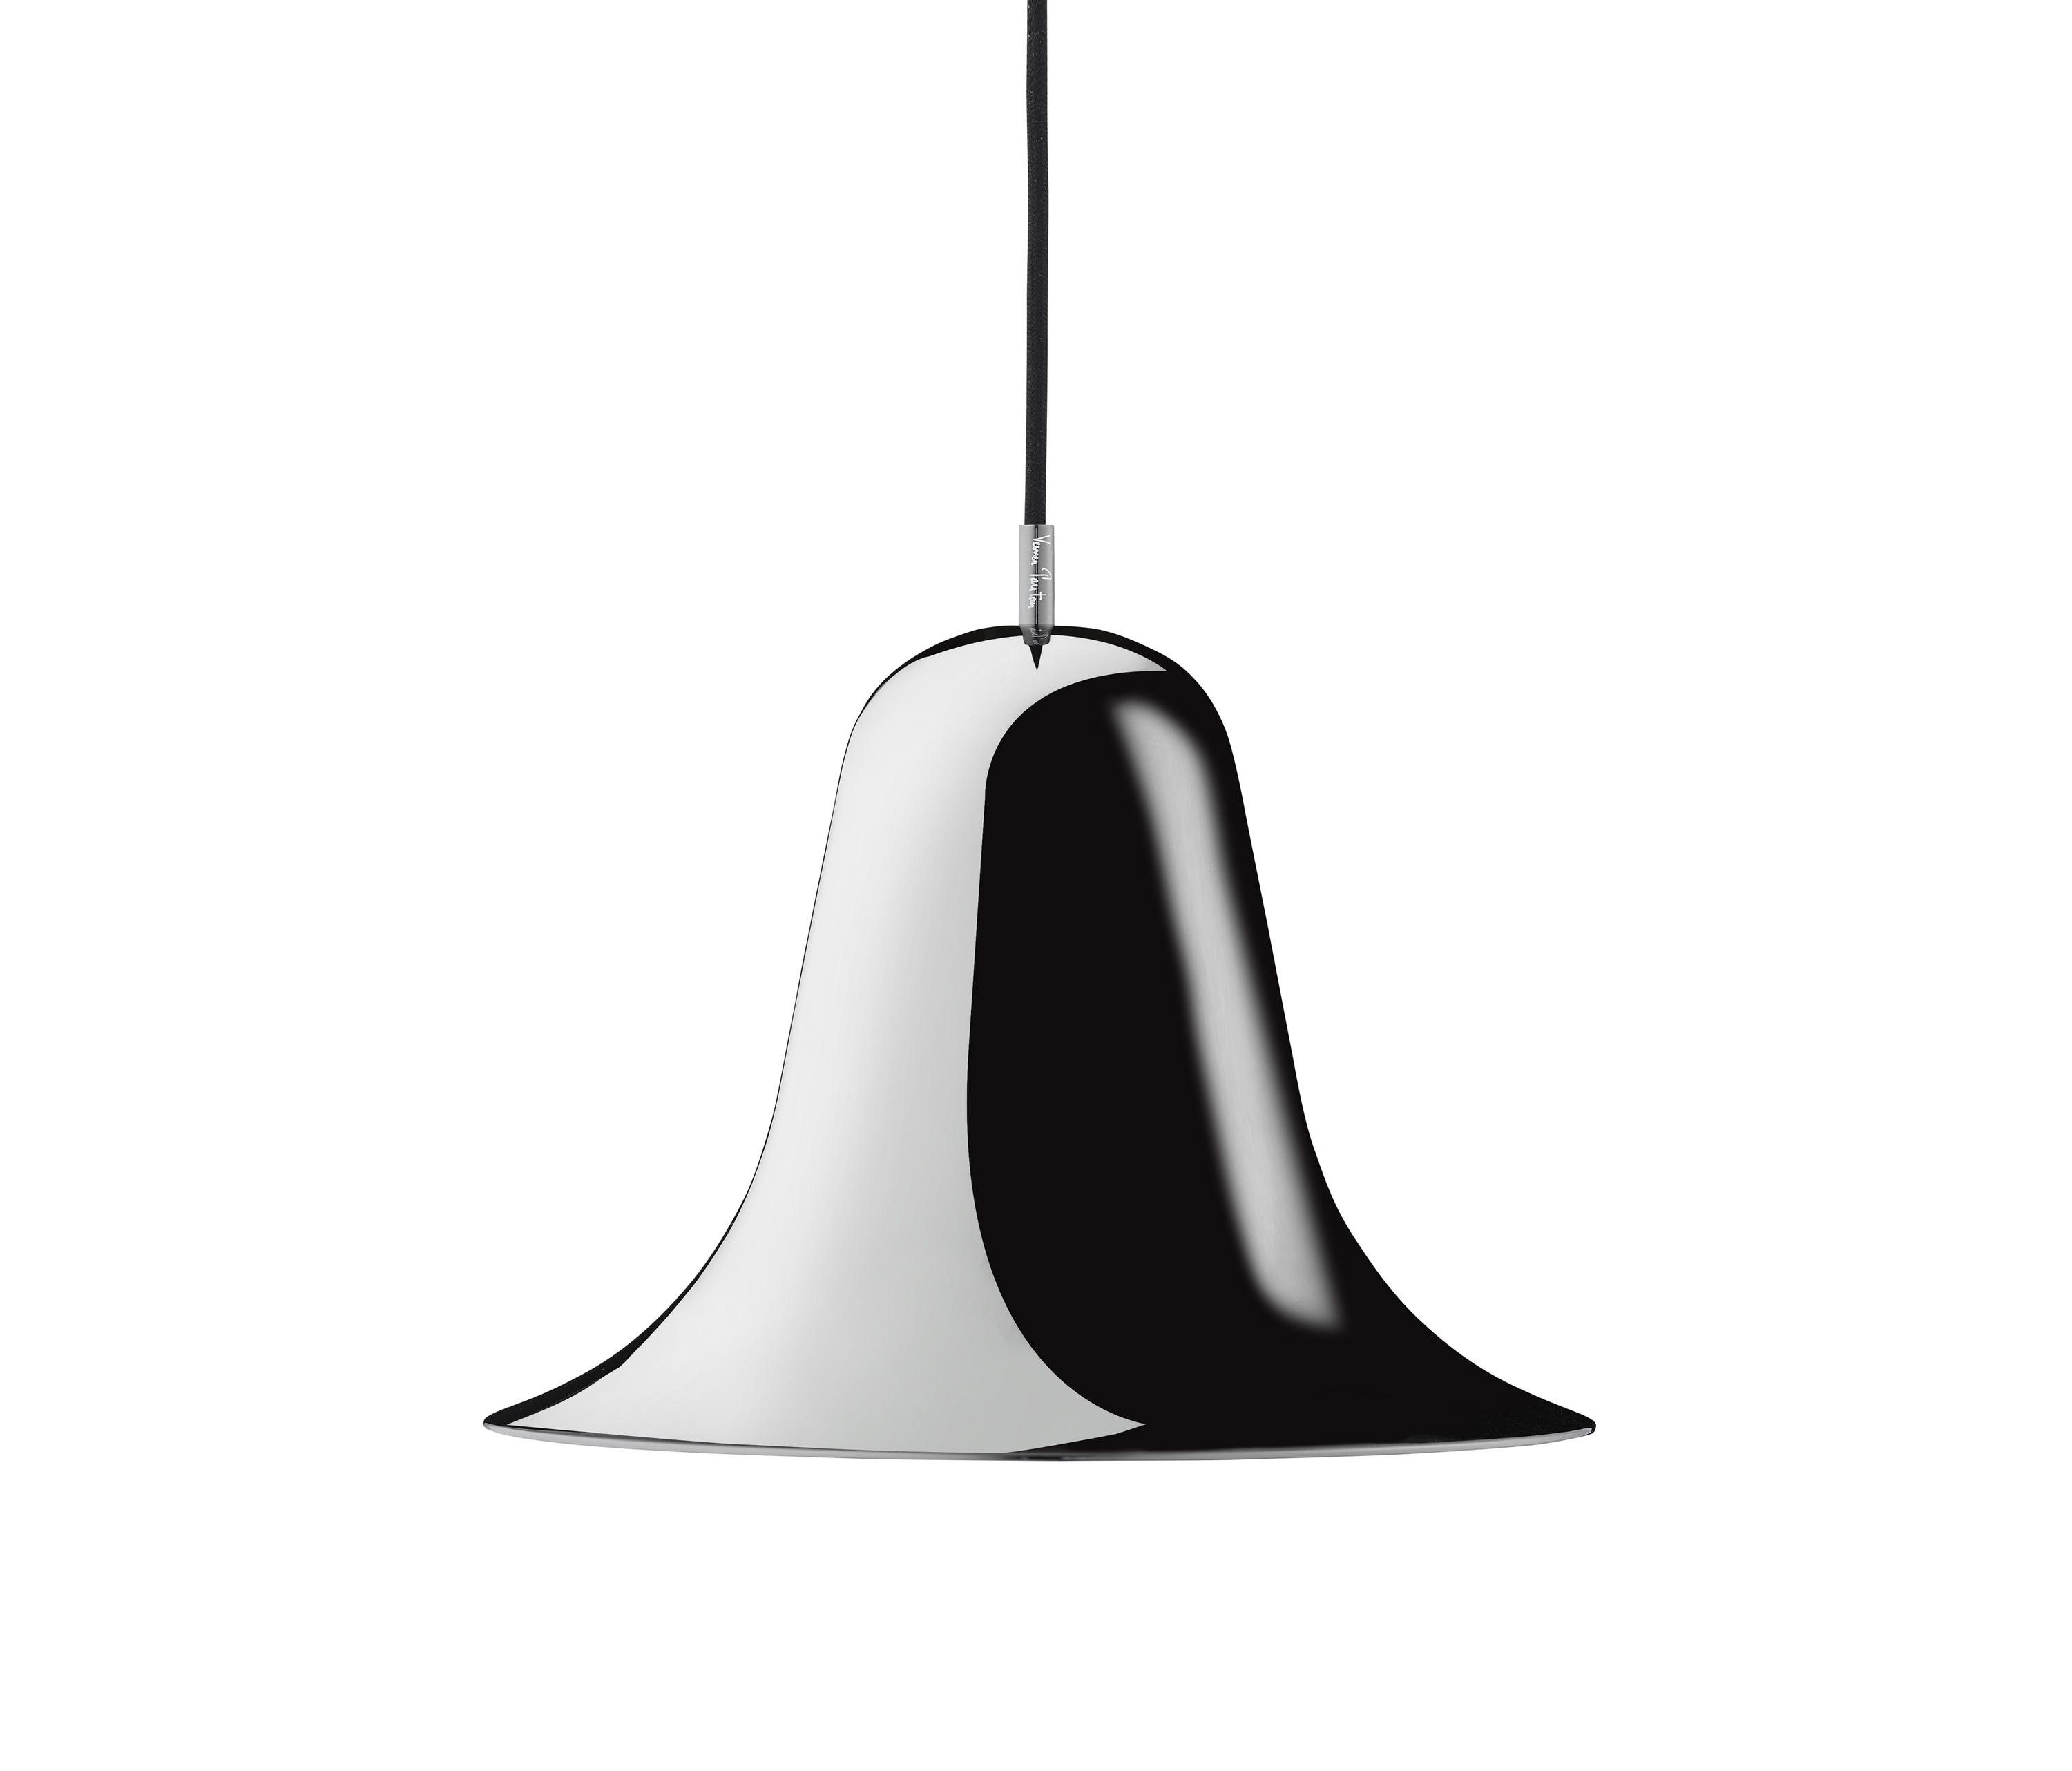 beat dixon lights wide pendant shop main peum black tom ceiling lighting